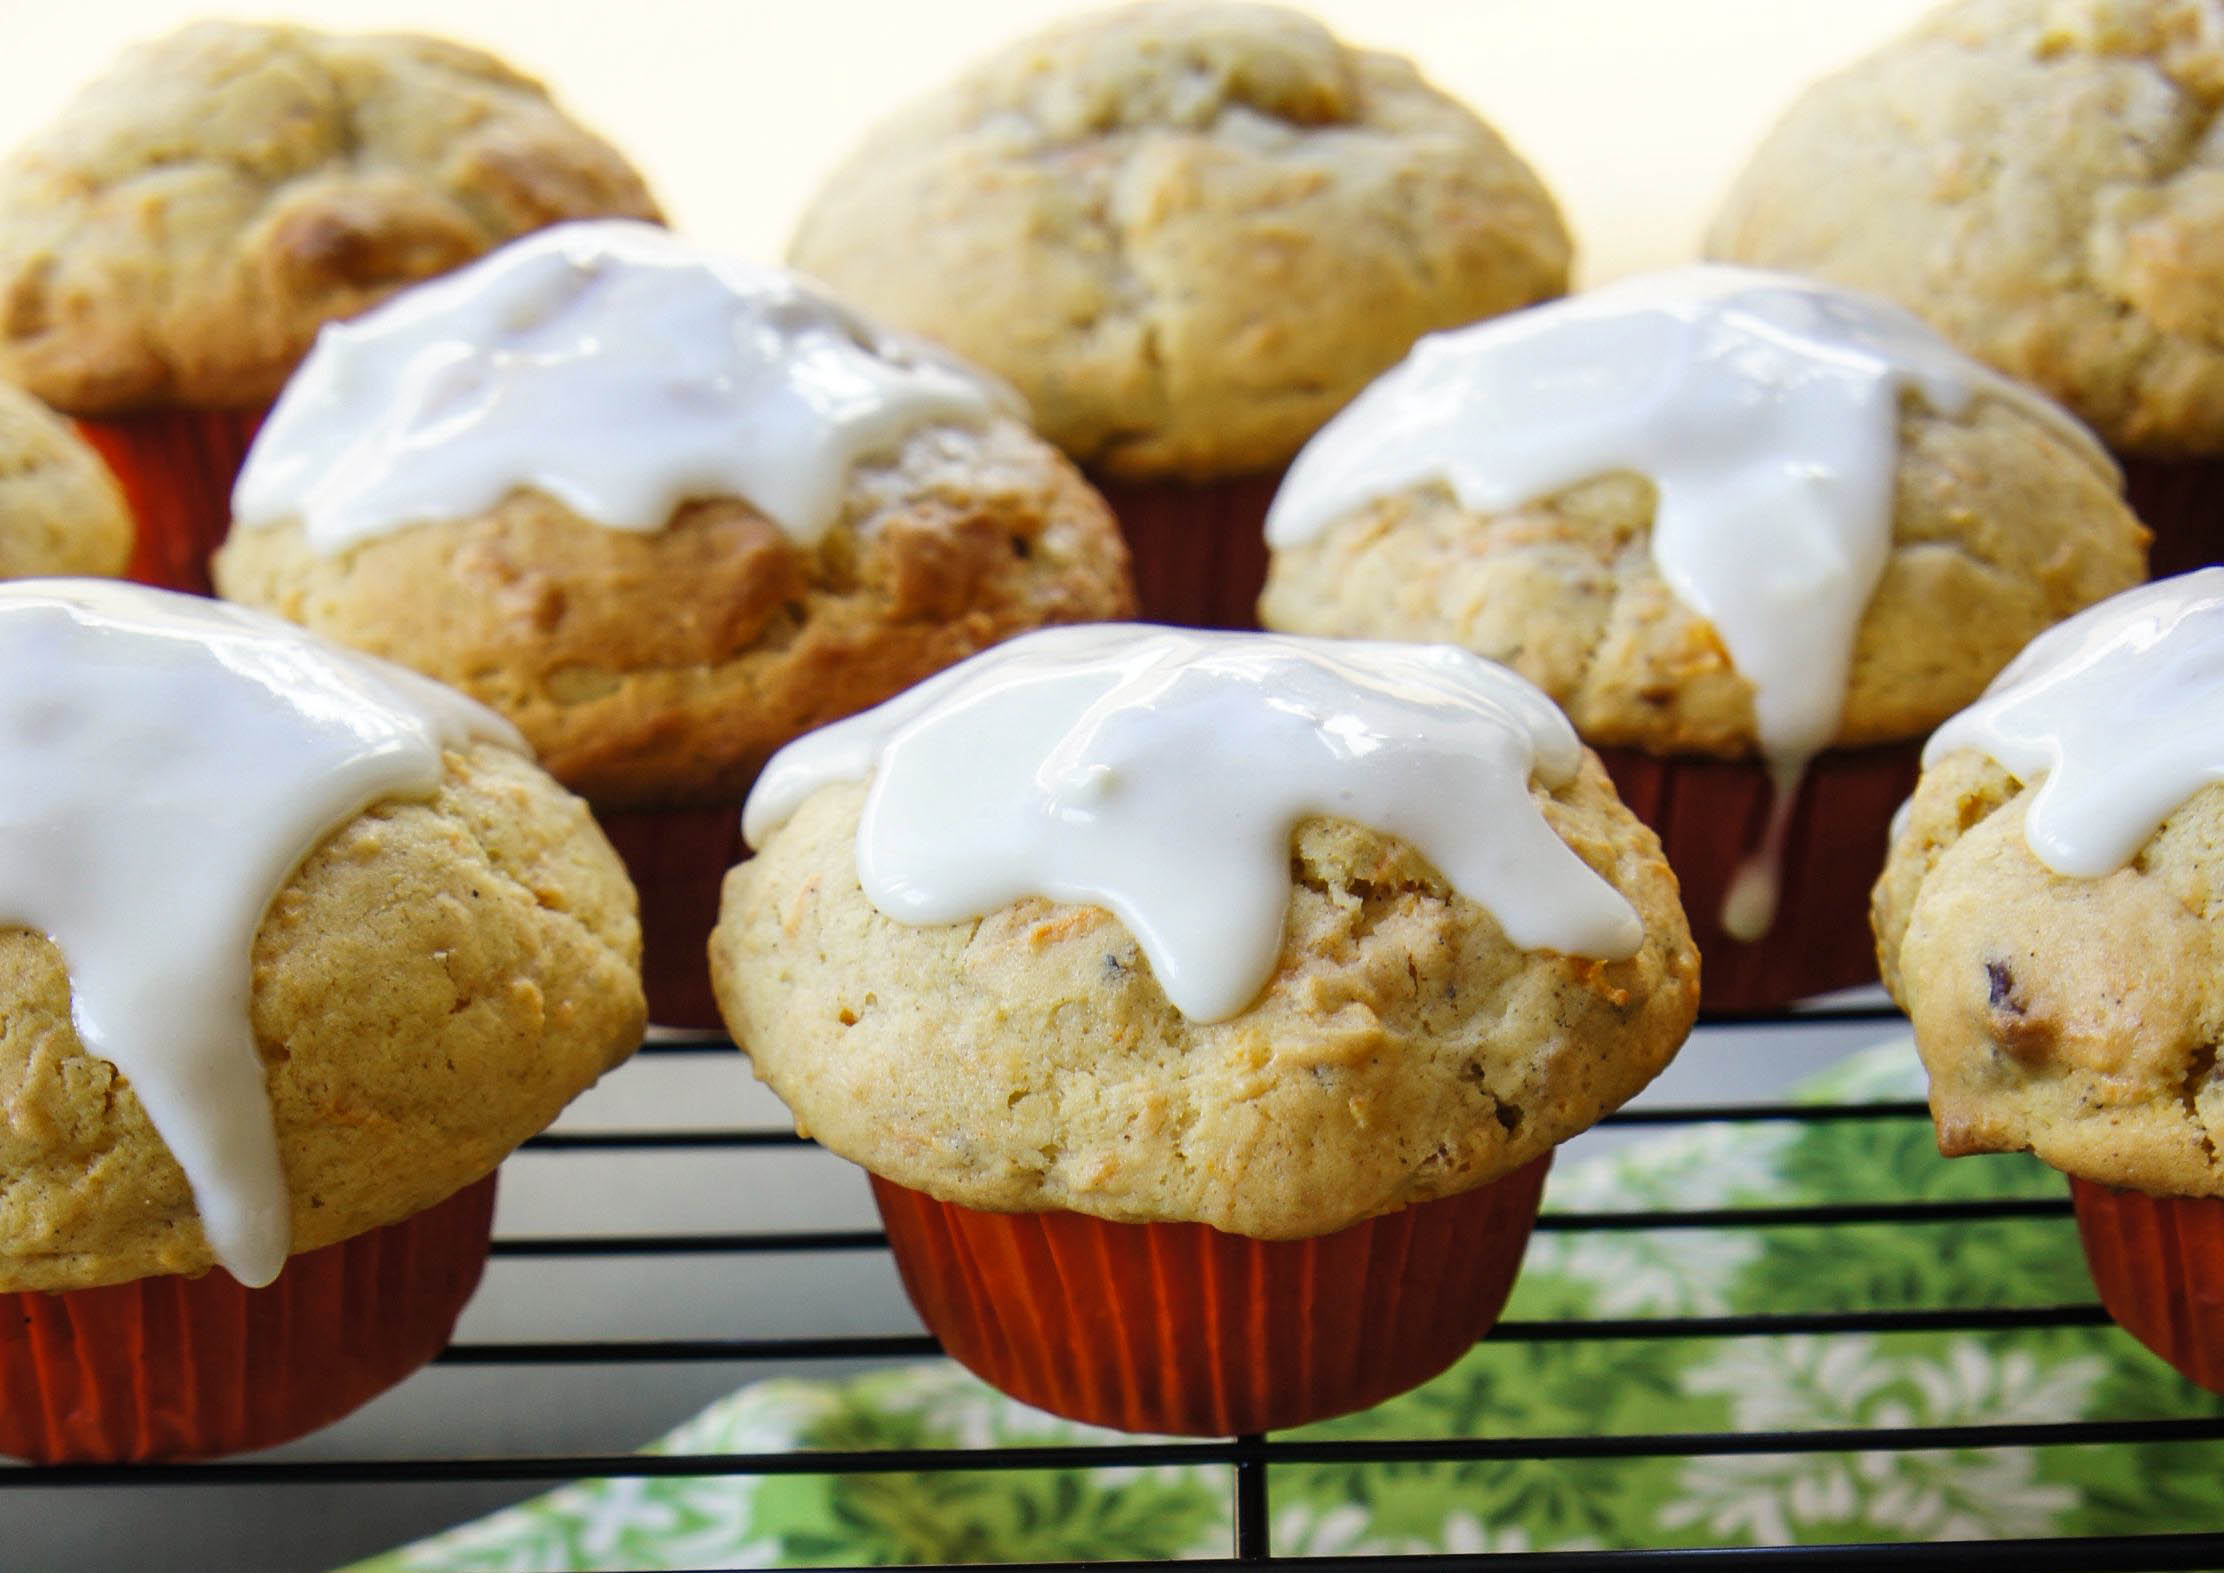 Bakery Style Carrot Cake Muffins with a Cream Cheese Glaze